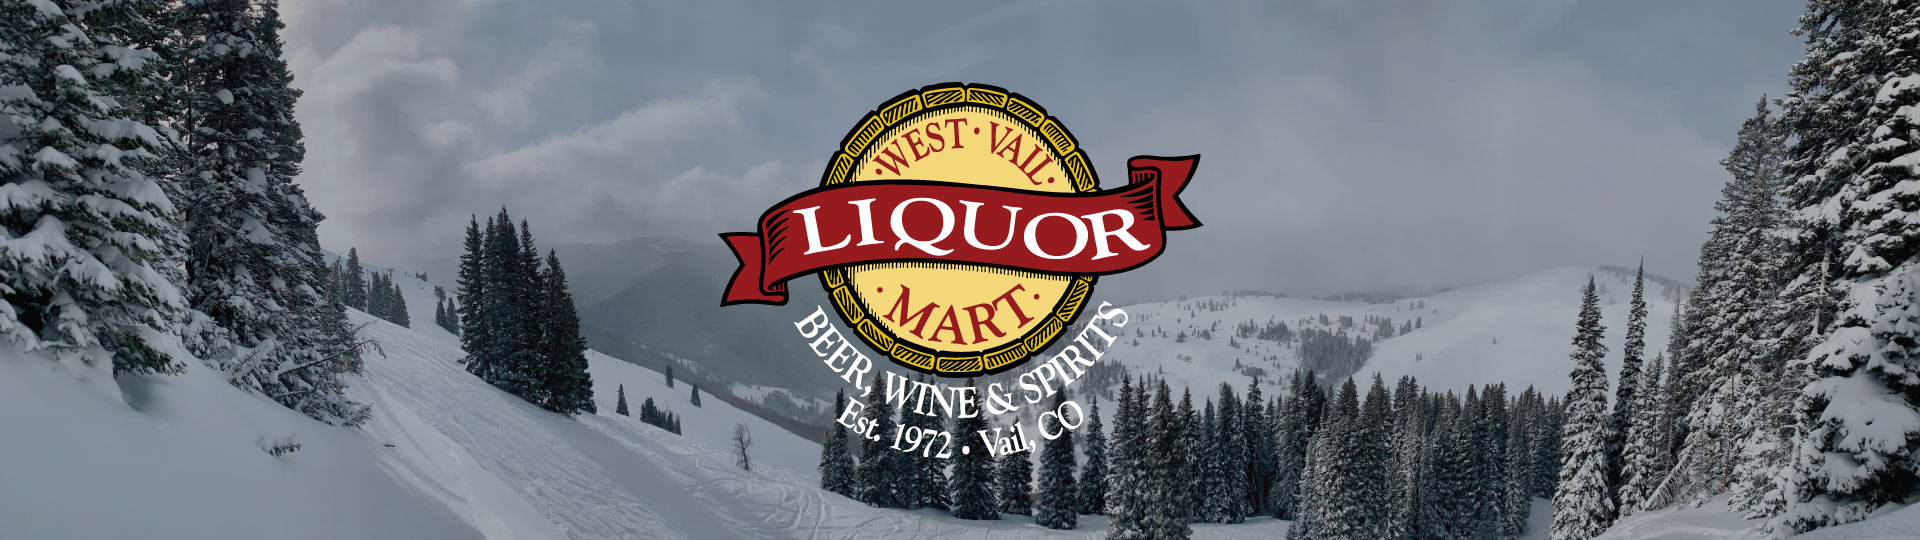 West Vail Liquor: Wine, Beer, Spirits | Vail, Avon, Edwards CO